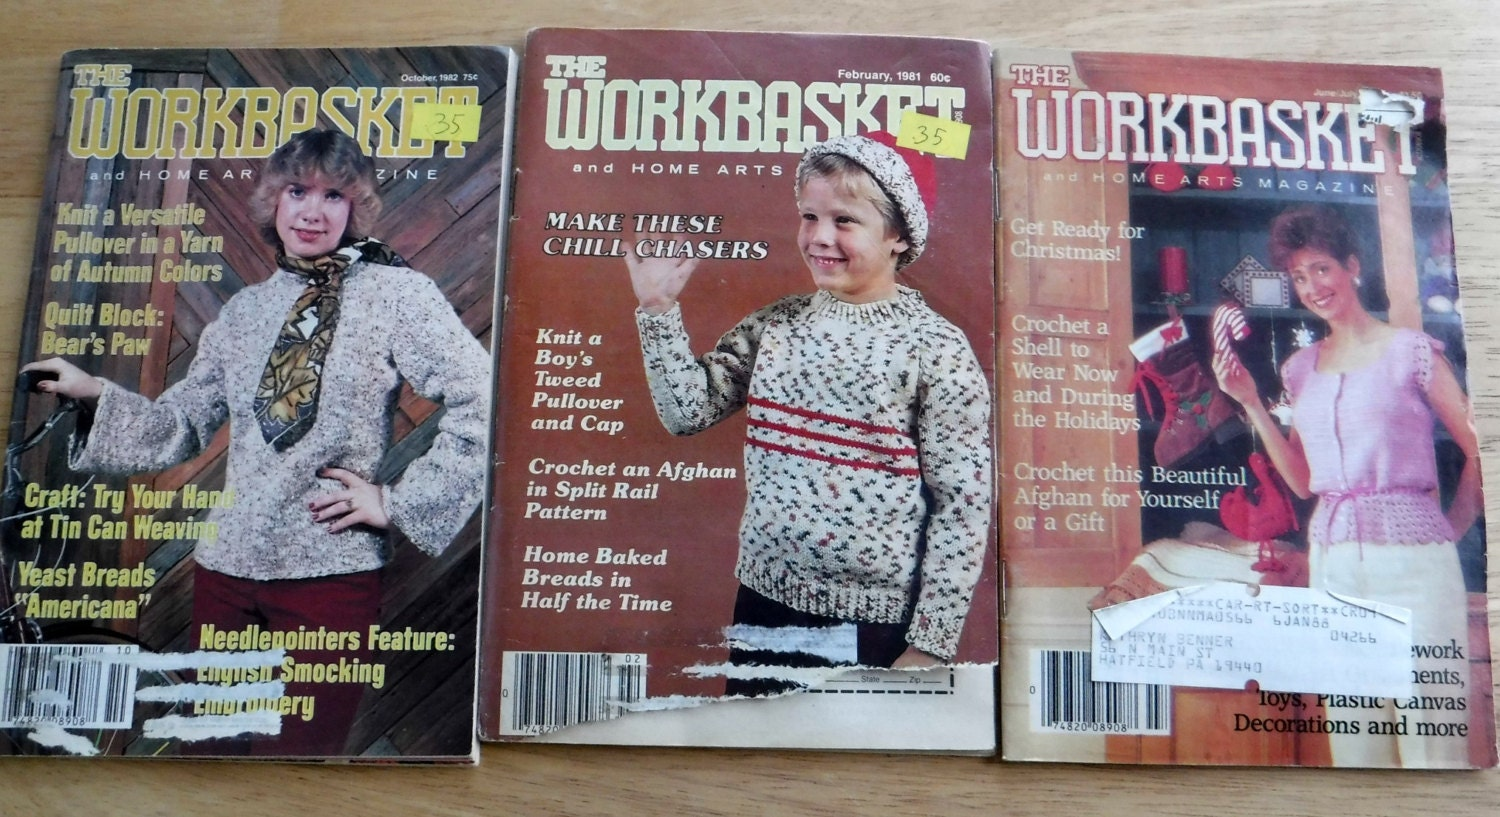 Lot of 12 1980s The workbasket and home arts magazine, vintage ...